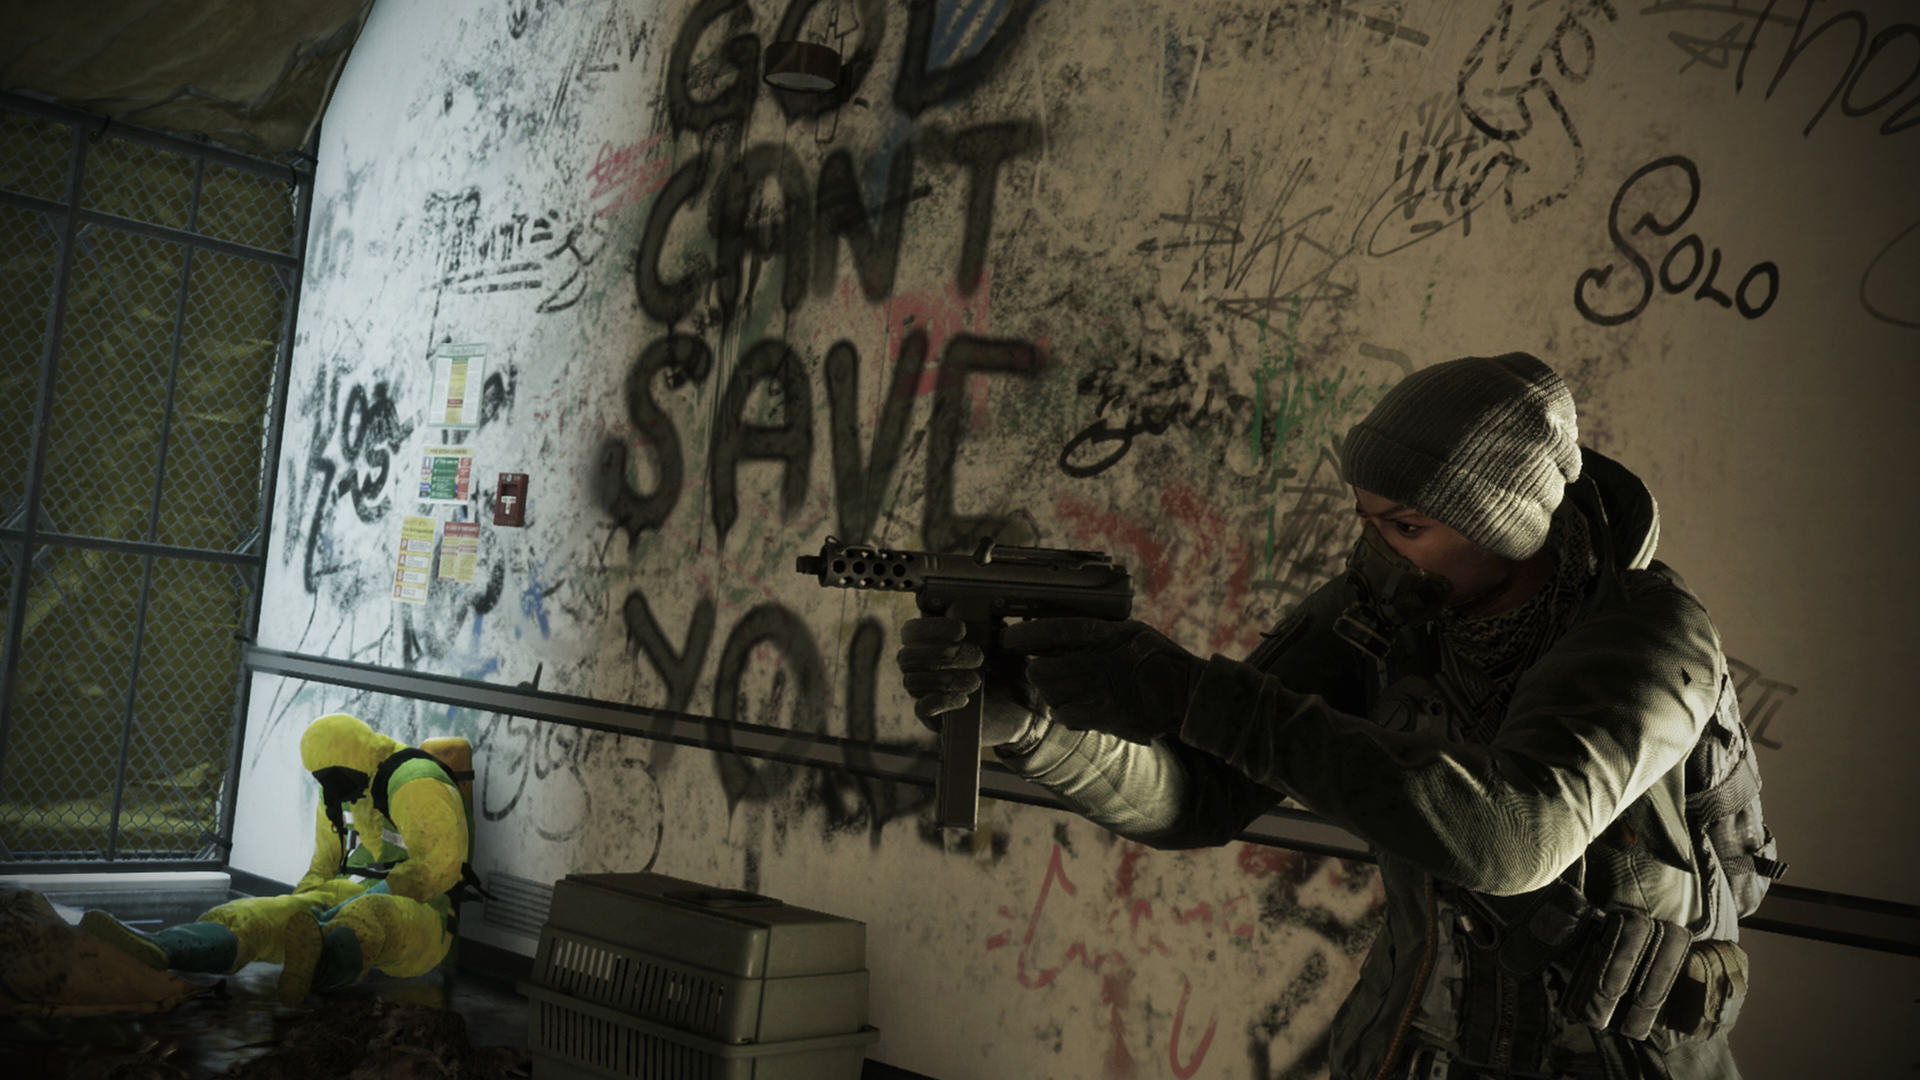 TCTD 1601 web screenshot agent pistol We Had An Exclusive Look At The Division Ahead Of Release Day